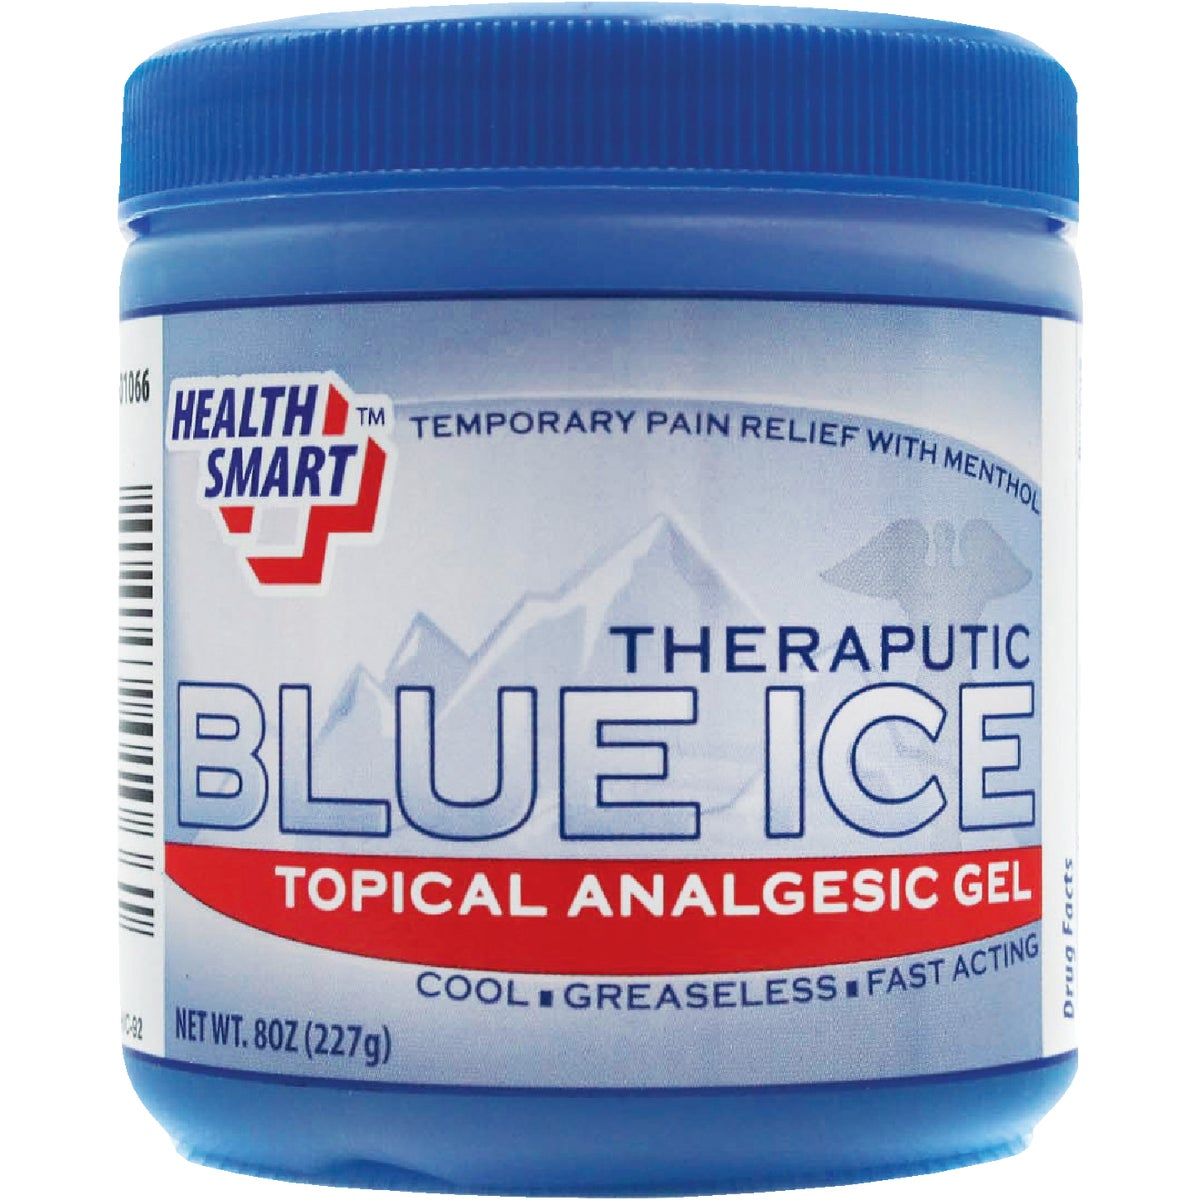 ICE GEL PAIN RELIEVER - 90346 by Personal Care Prod